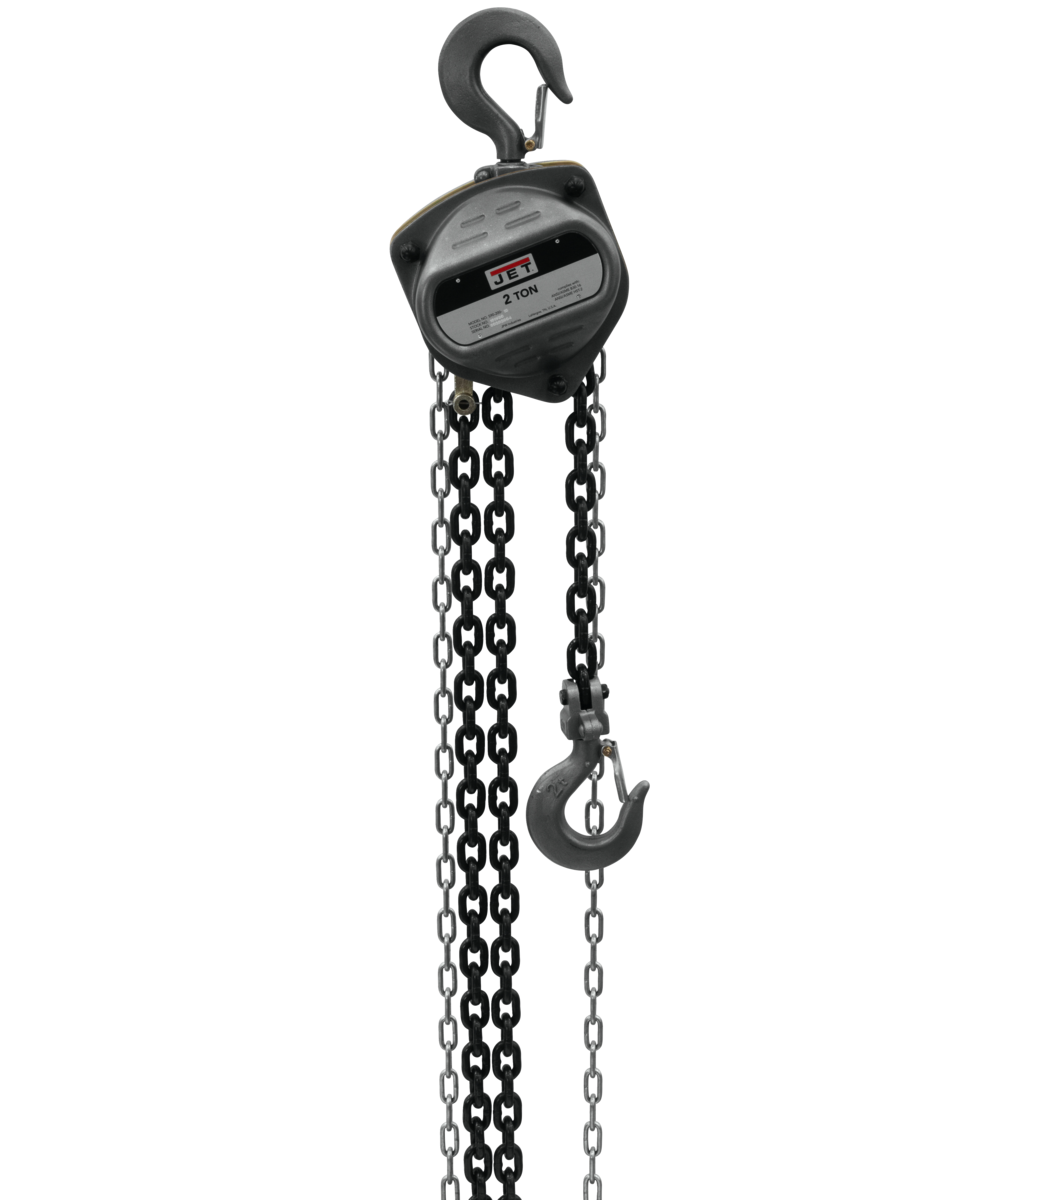 S90-200-10, 2-Ton Hand Chain Hoist With 10' Lift